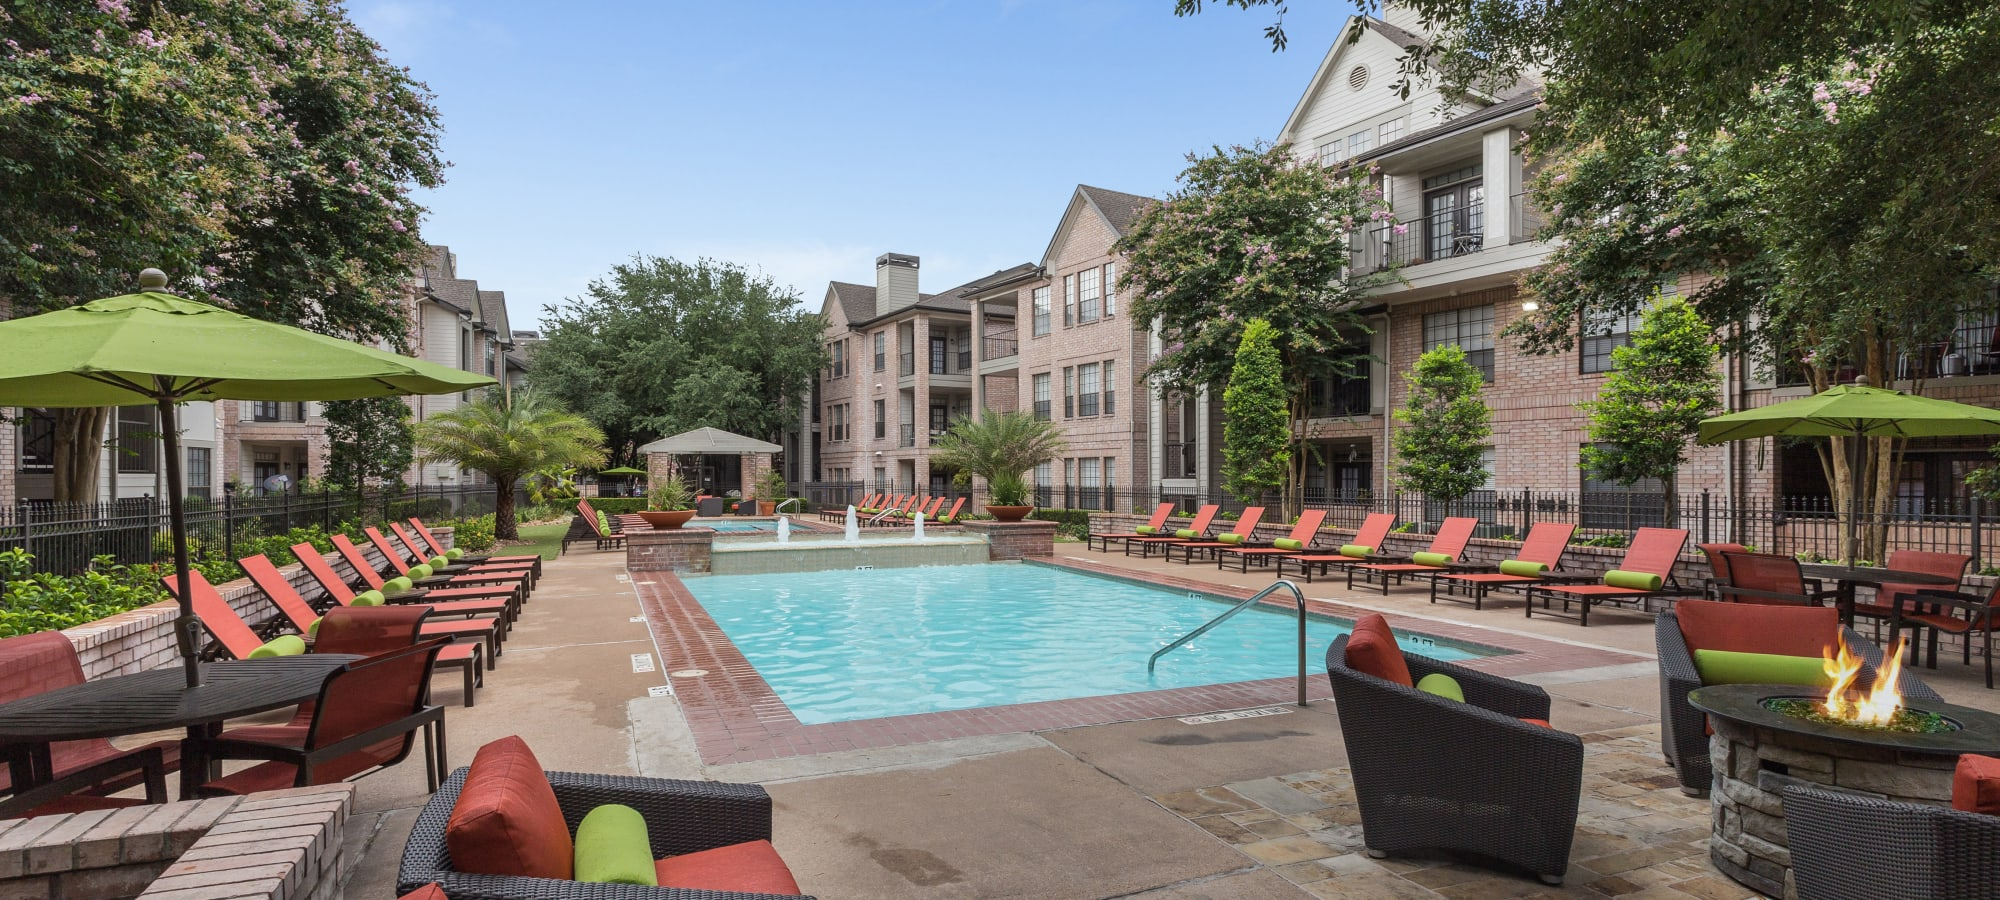 Apartments at Greenbriar Park in Houston, Texas